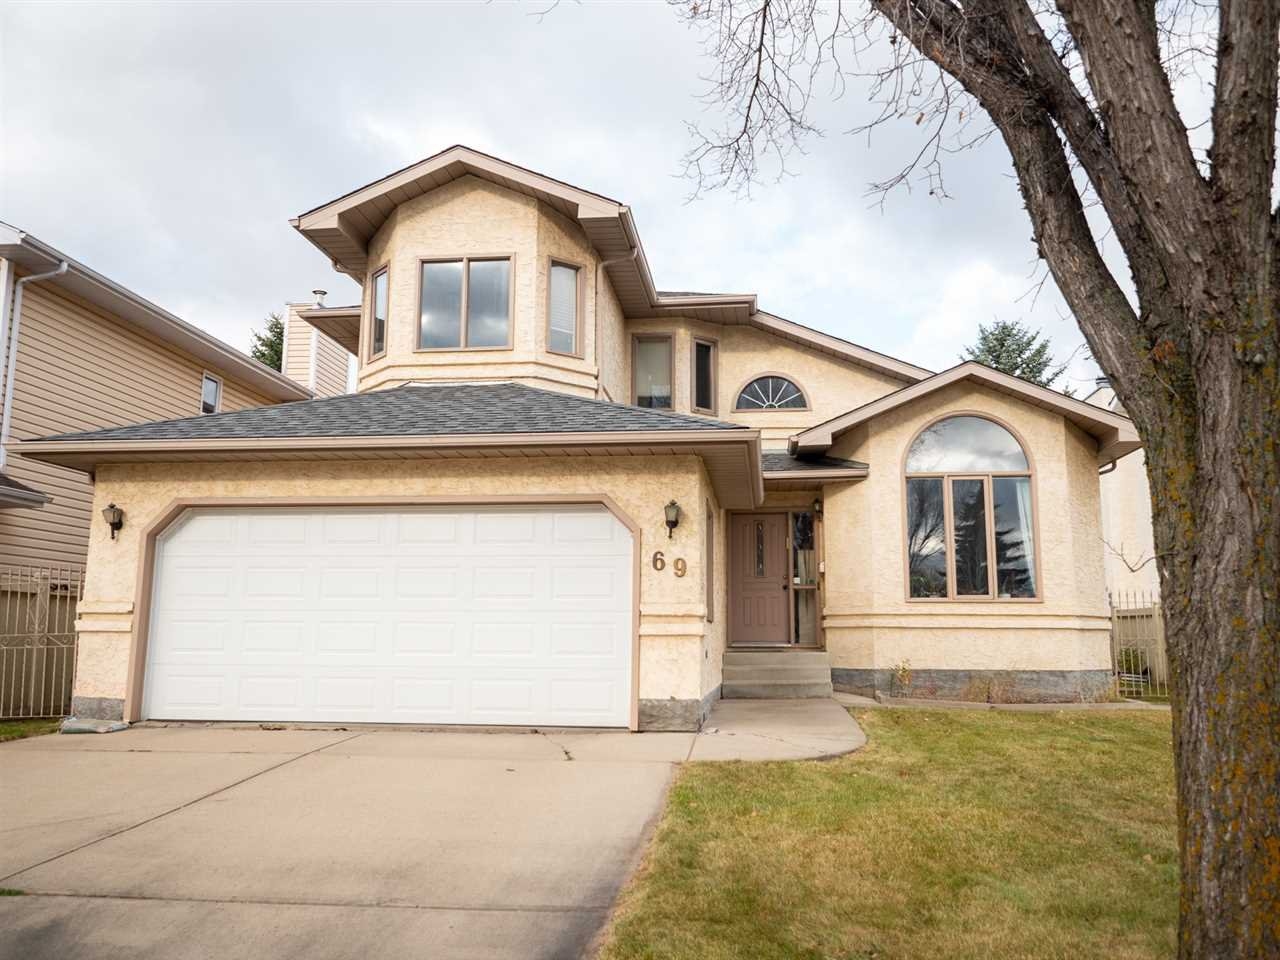 Main Photo: 69 ORMSBY Road W in Edmonton: Zone 20 House for sale : MLS®# E4218564